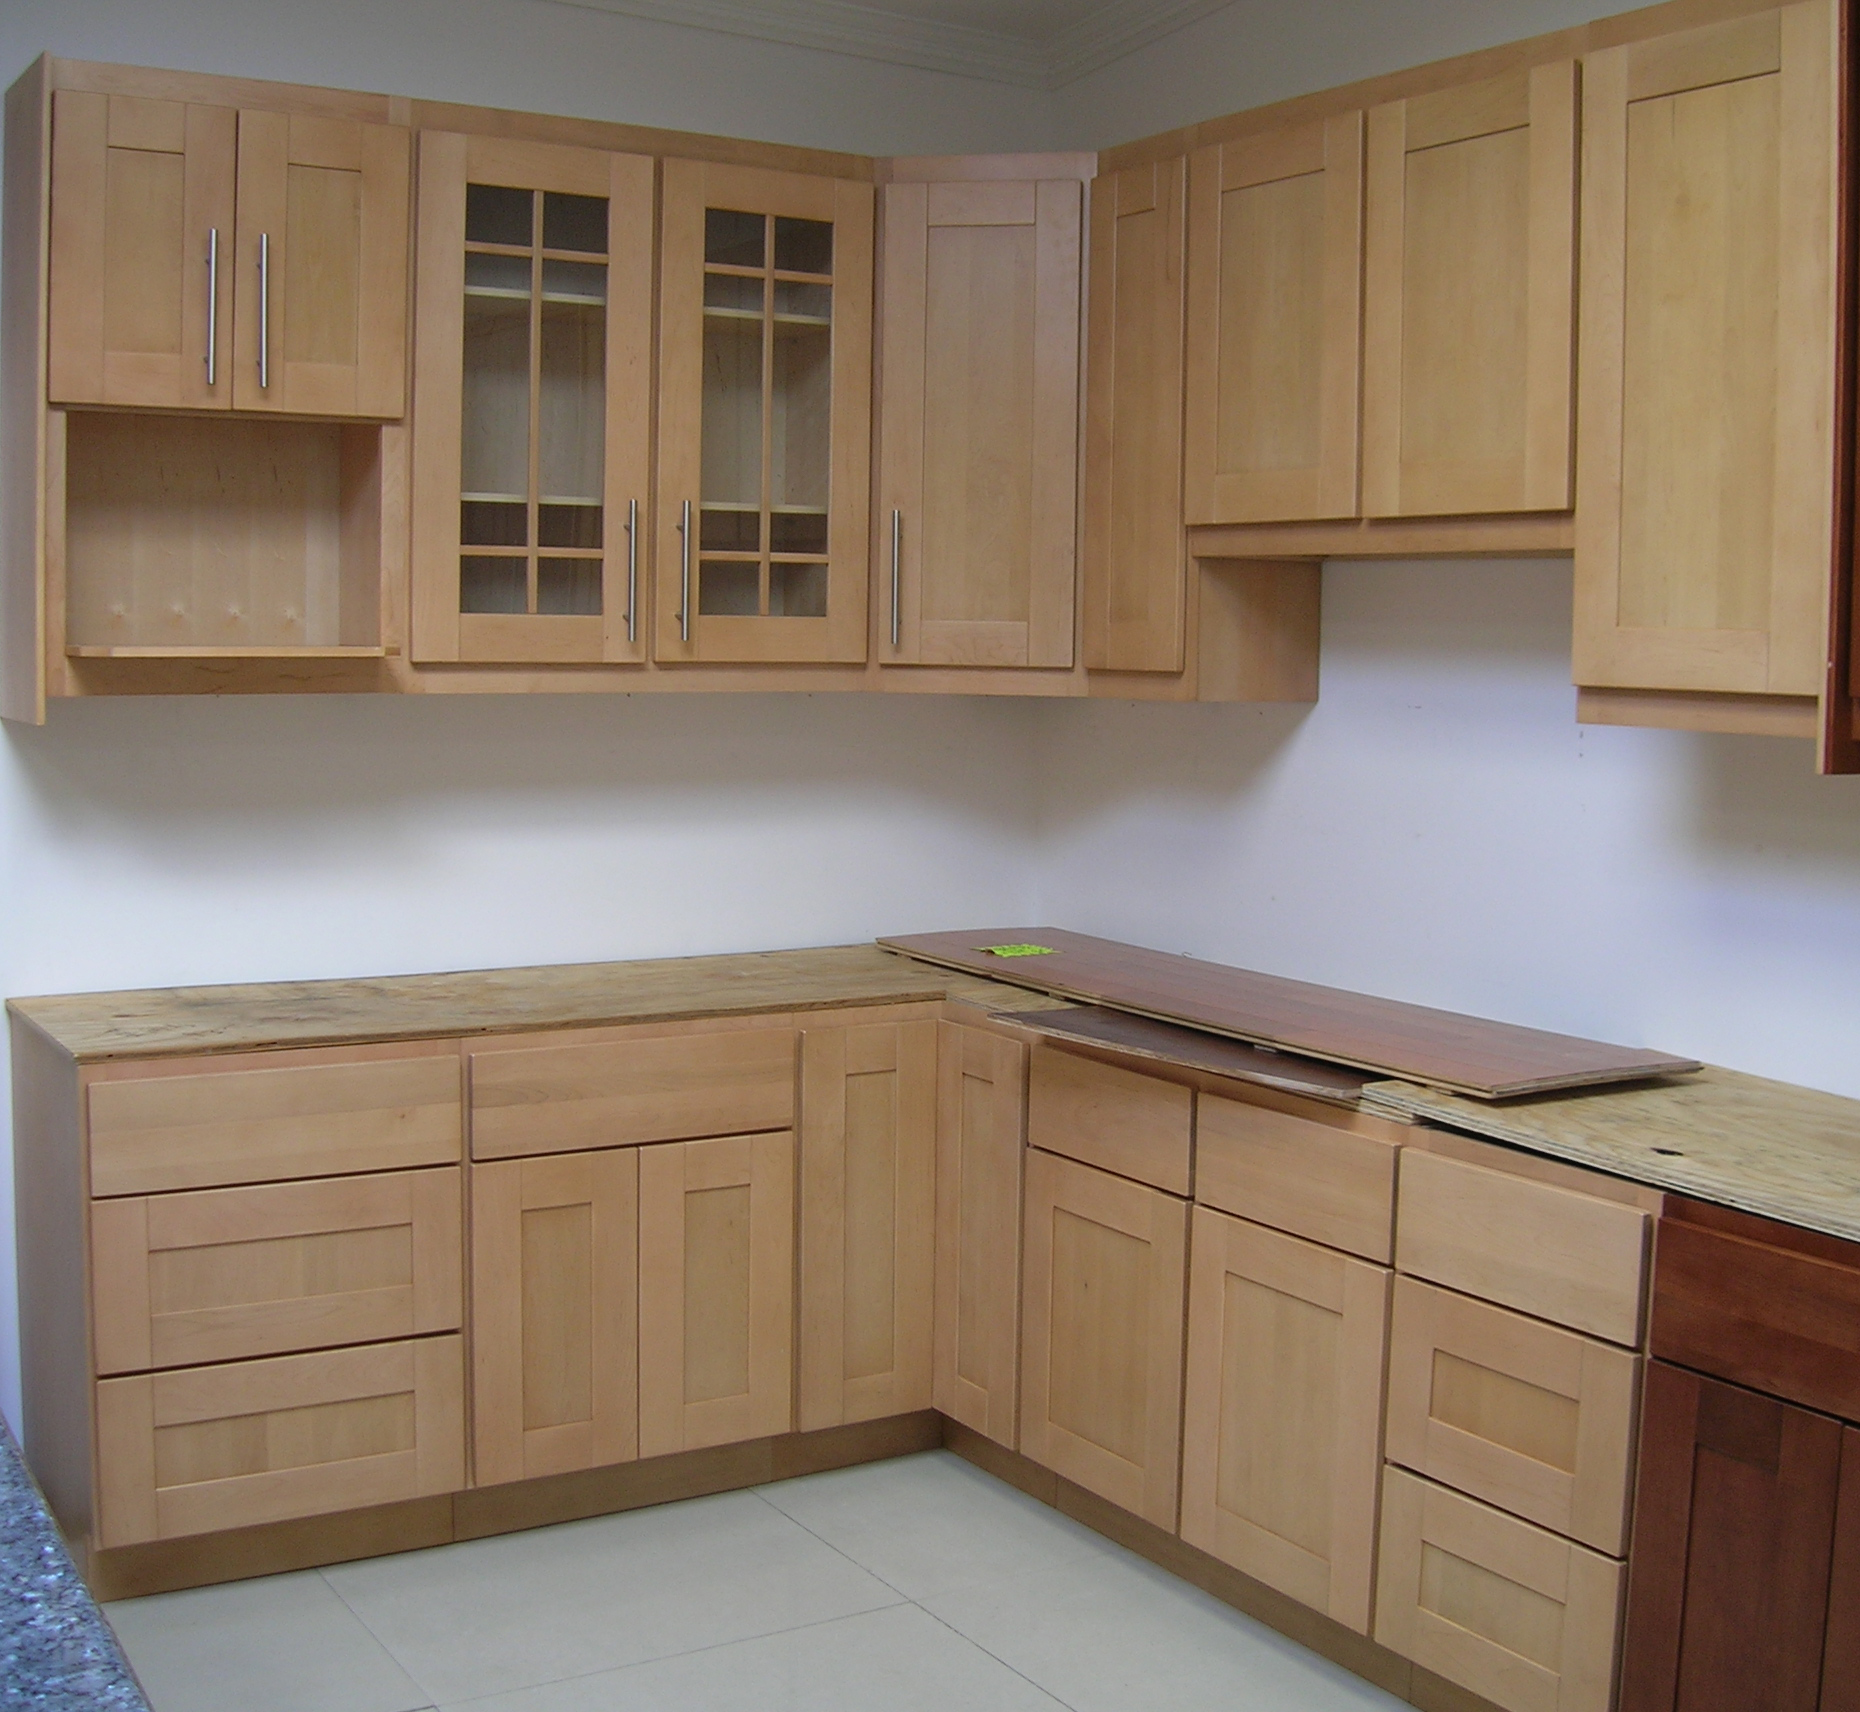 Kitchen storage cabinets photo - 2